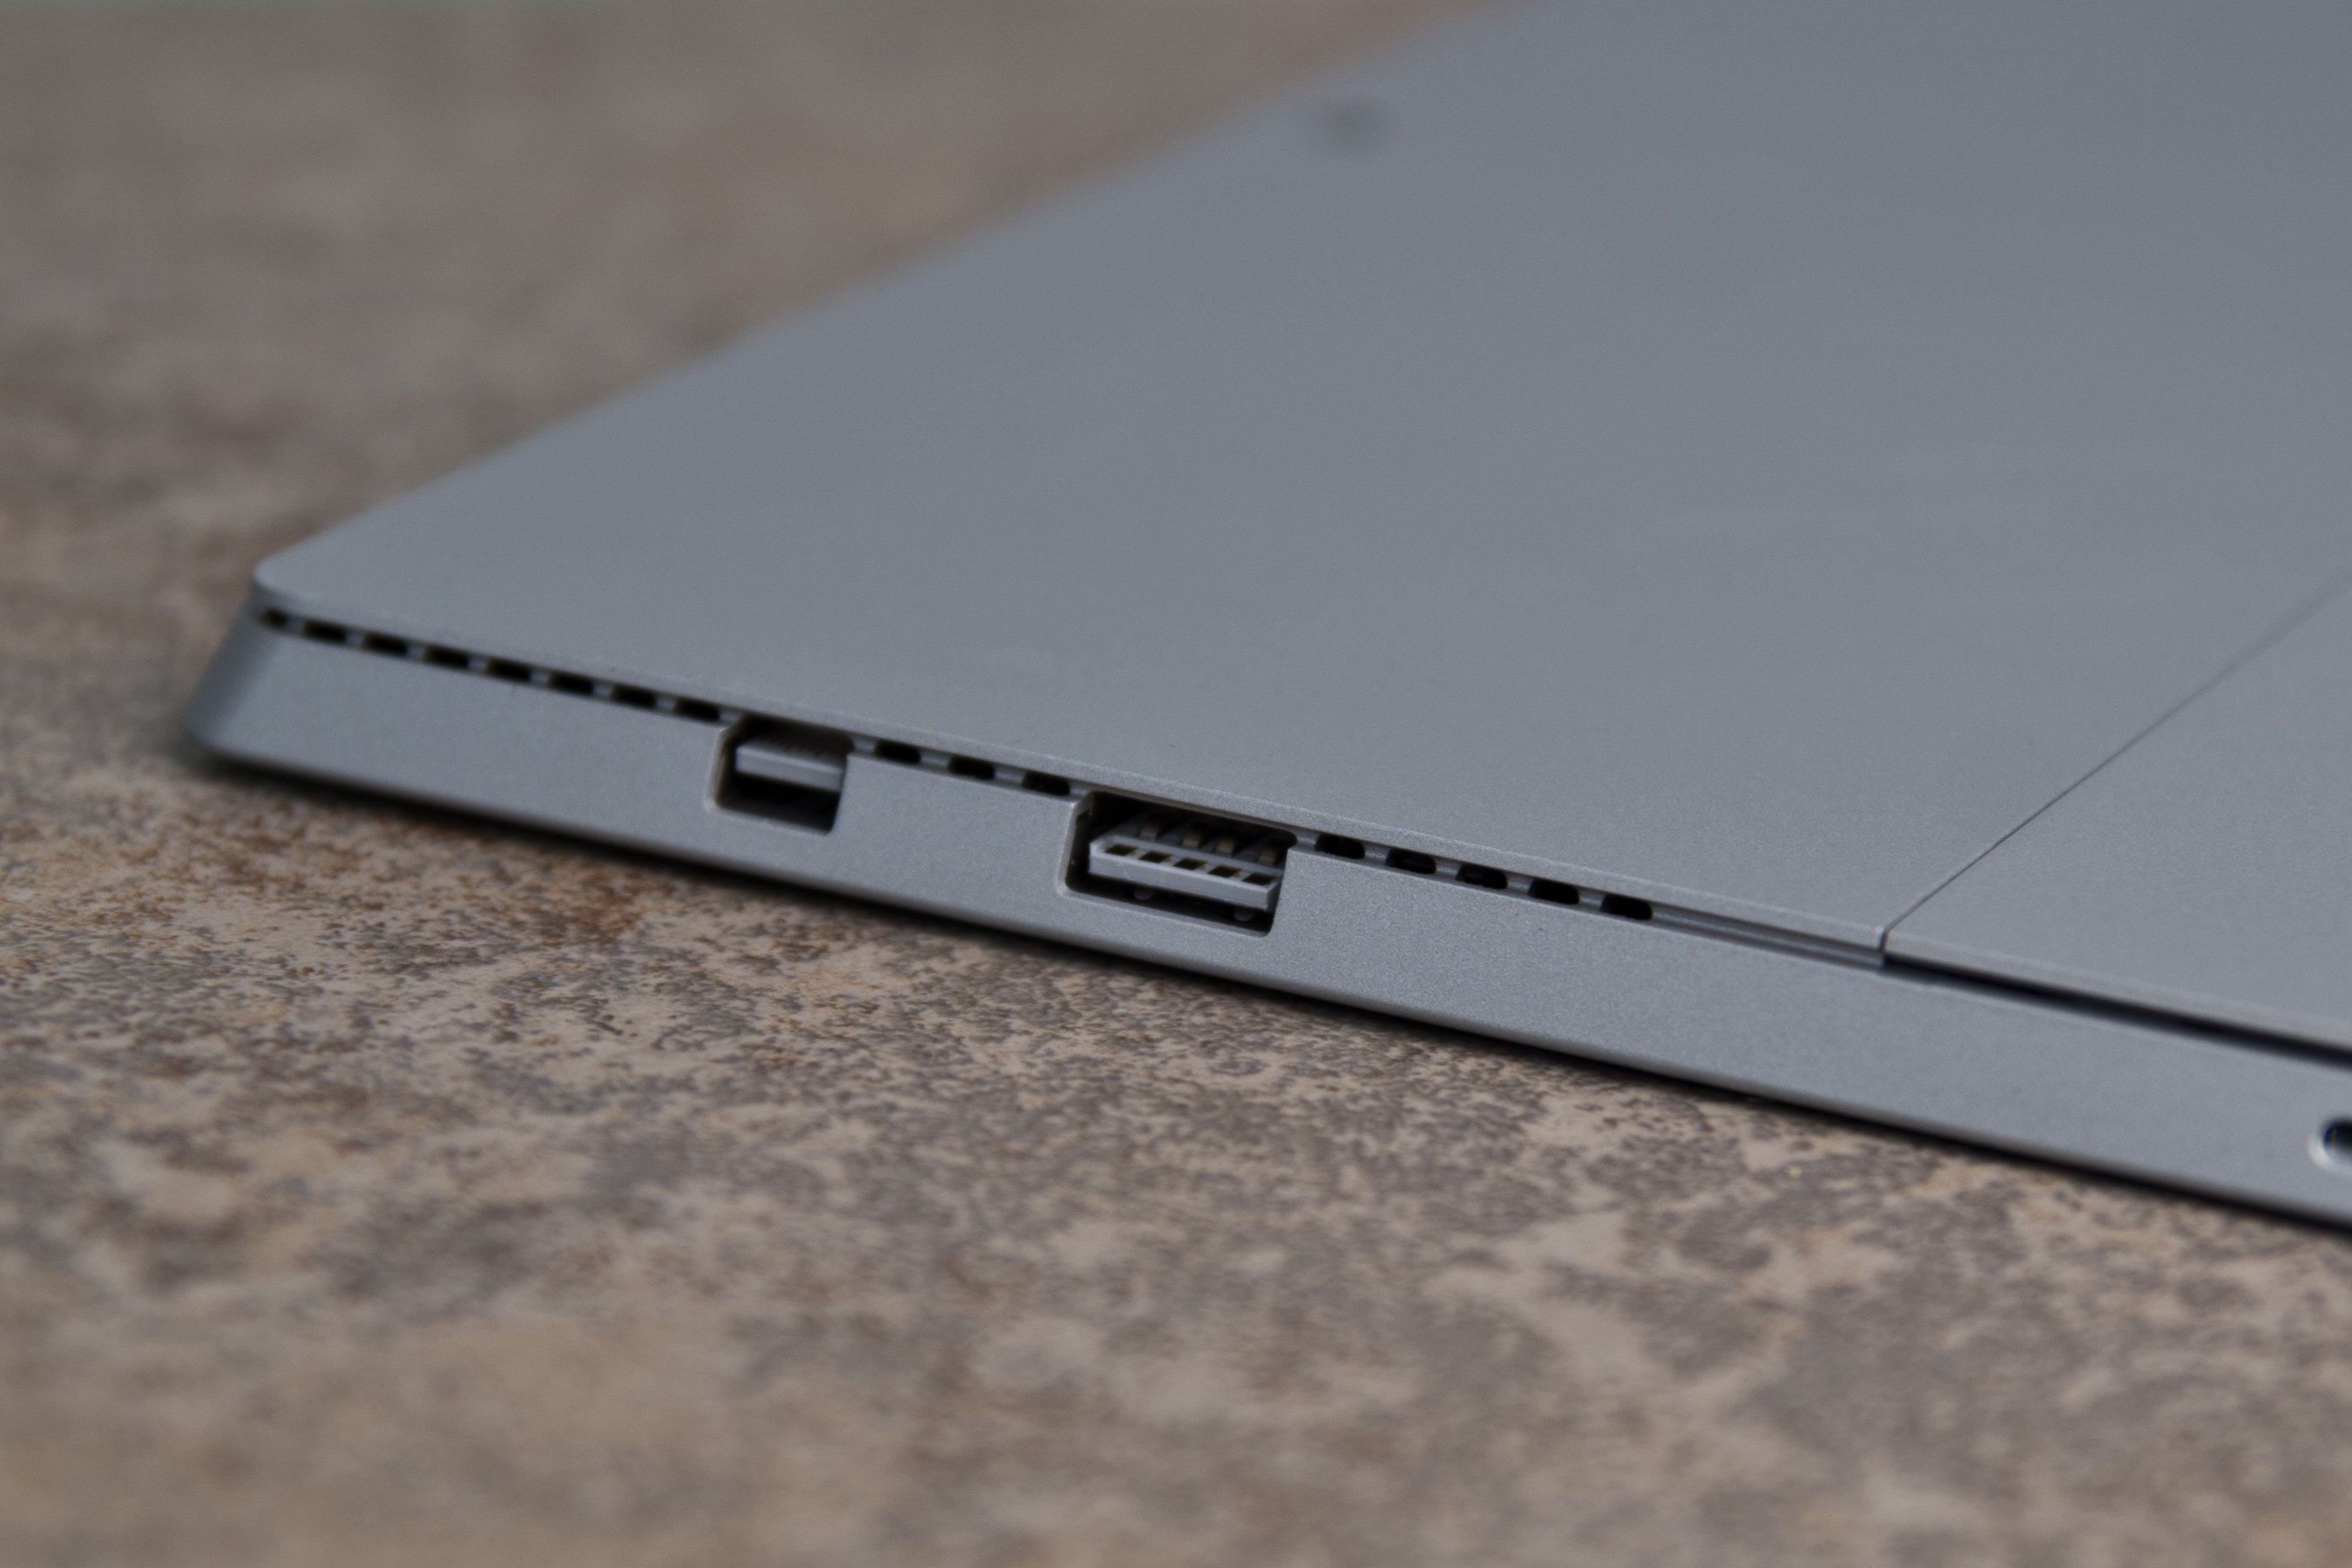 A closer look at the Microsoft Surface Pro 3's ports.